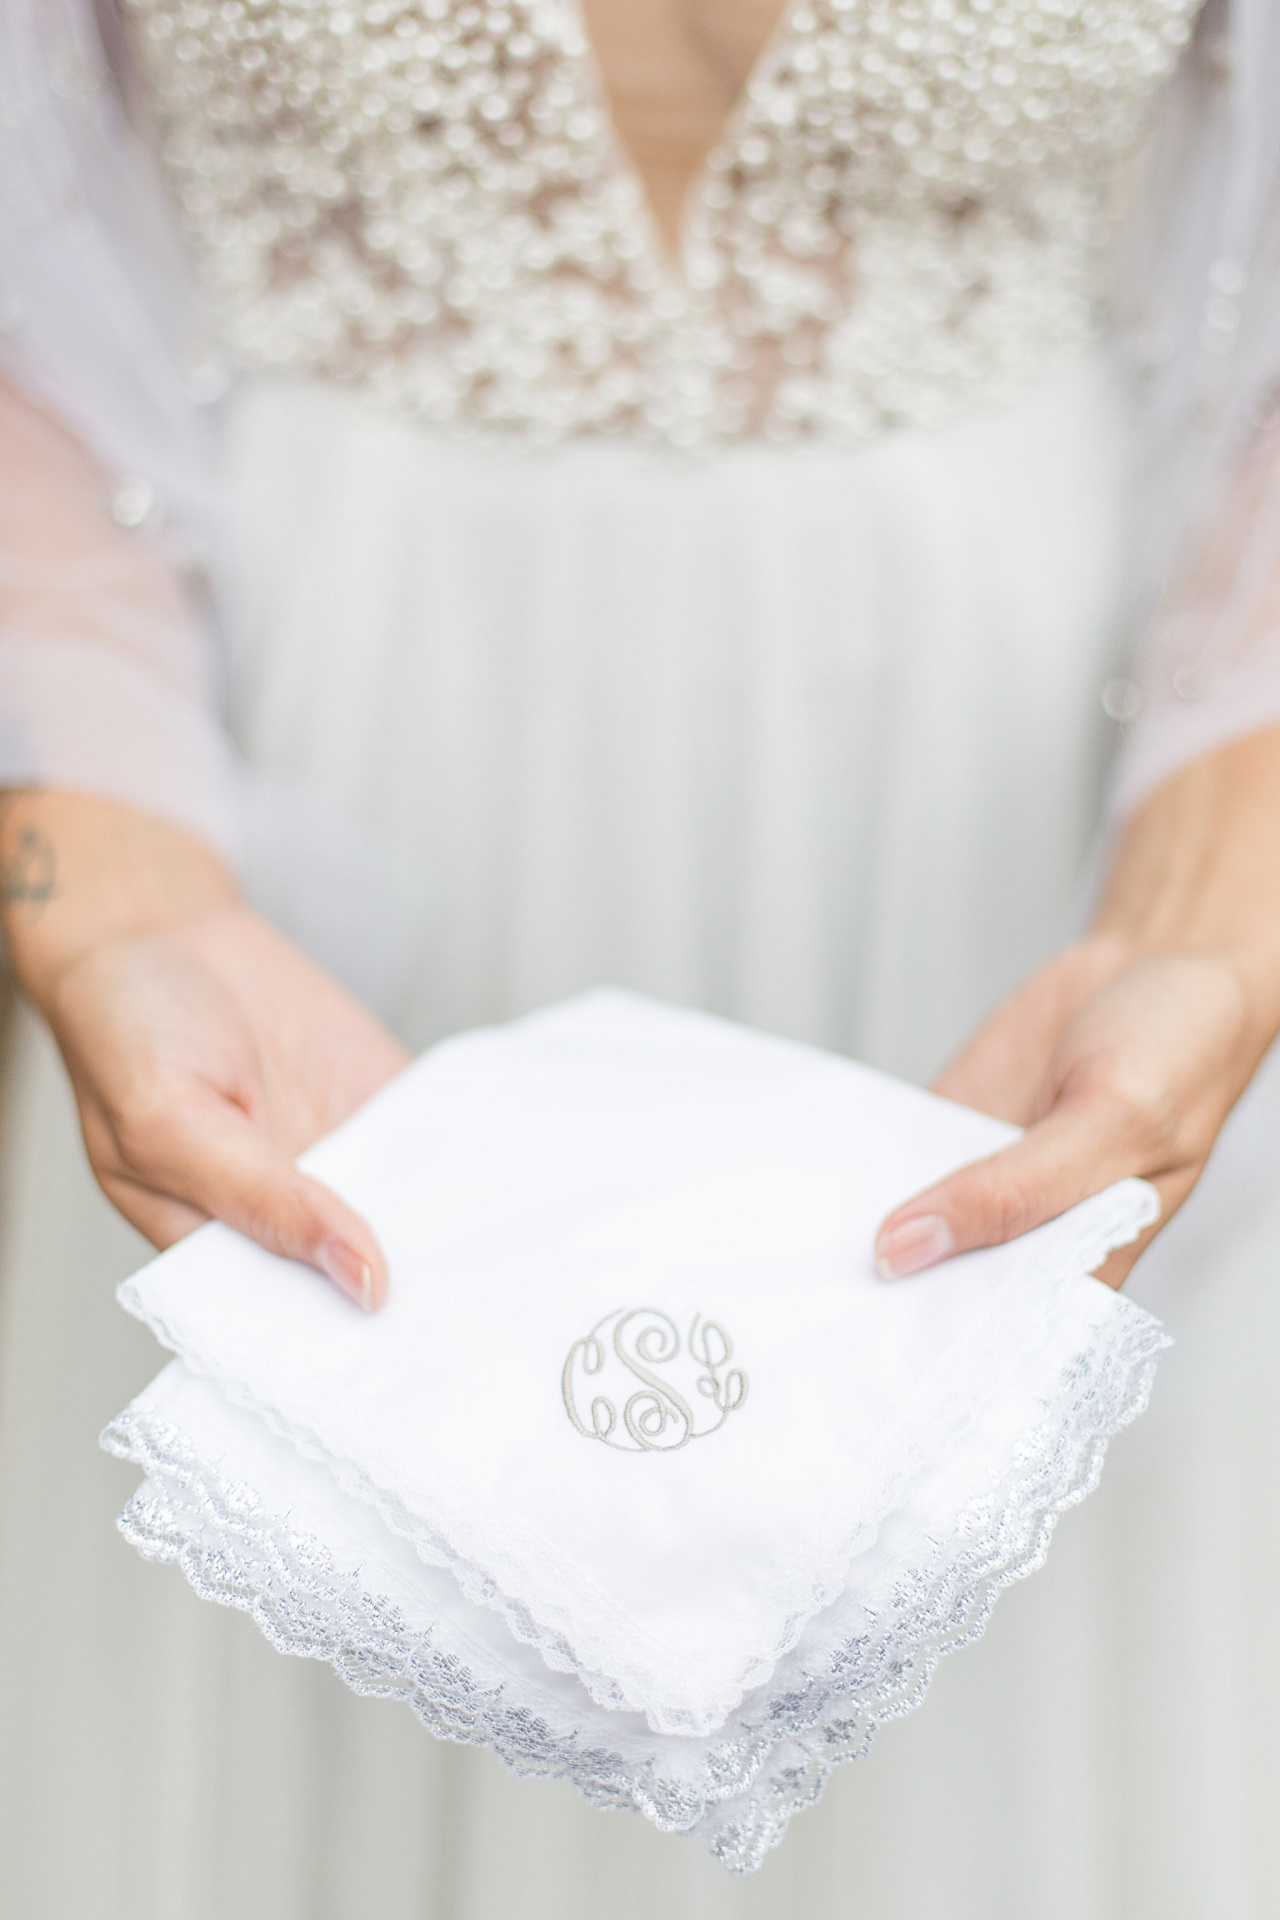 Silver lace monogrammed handkerchief